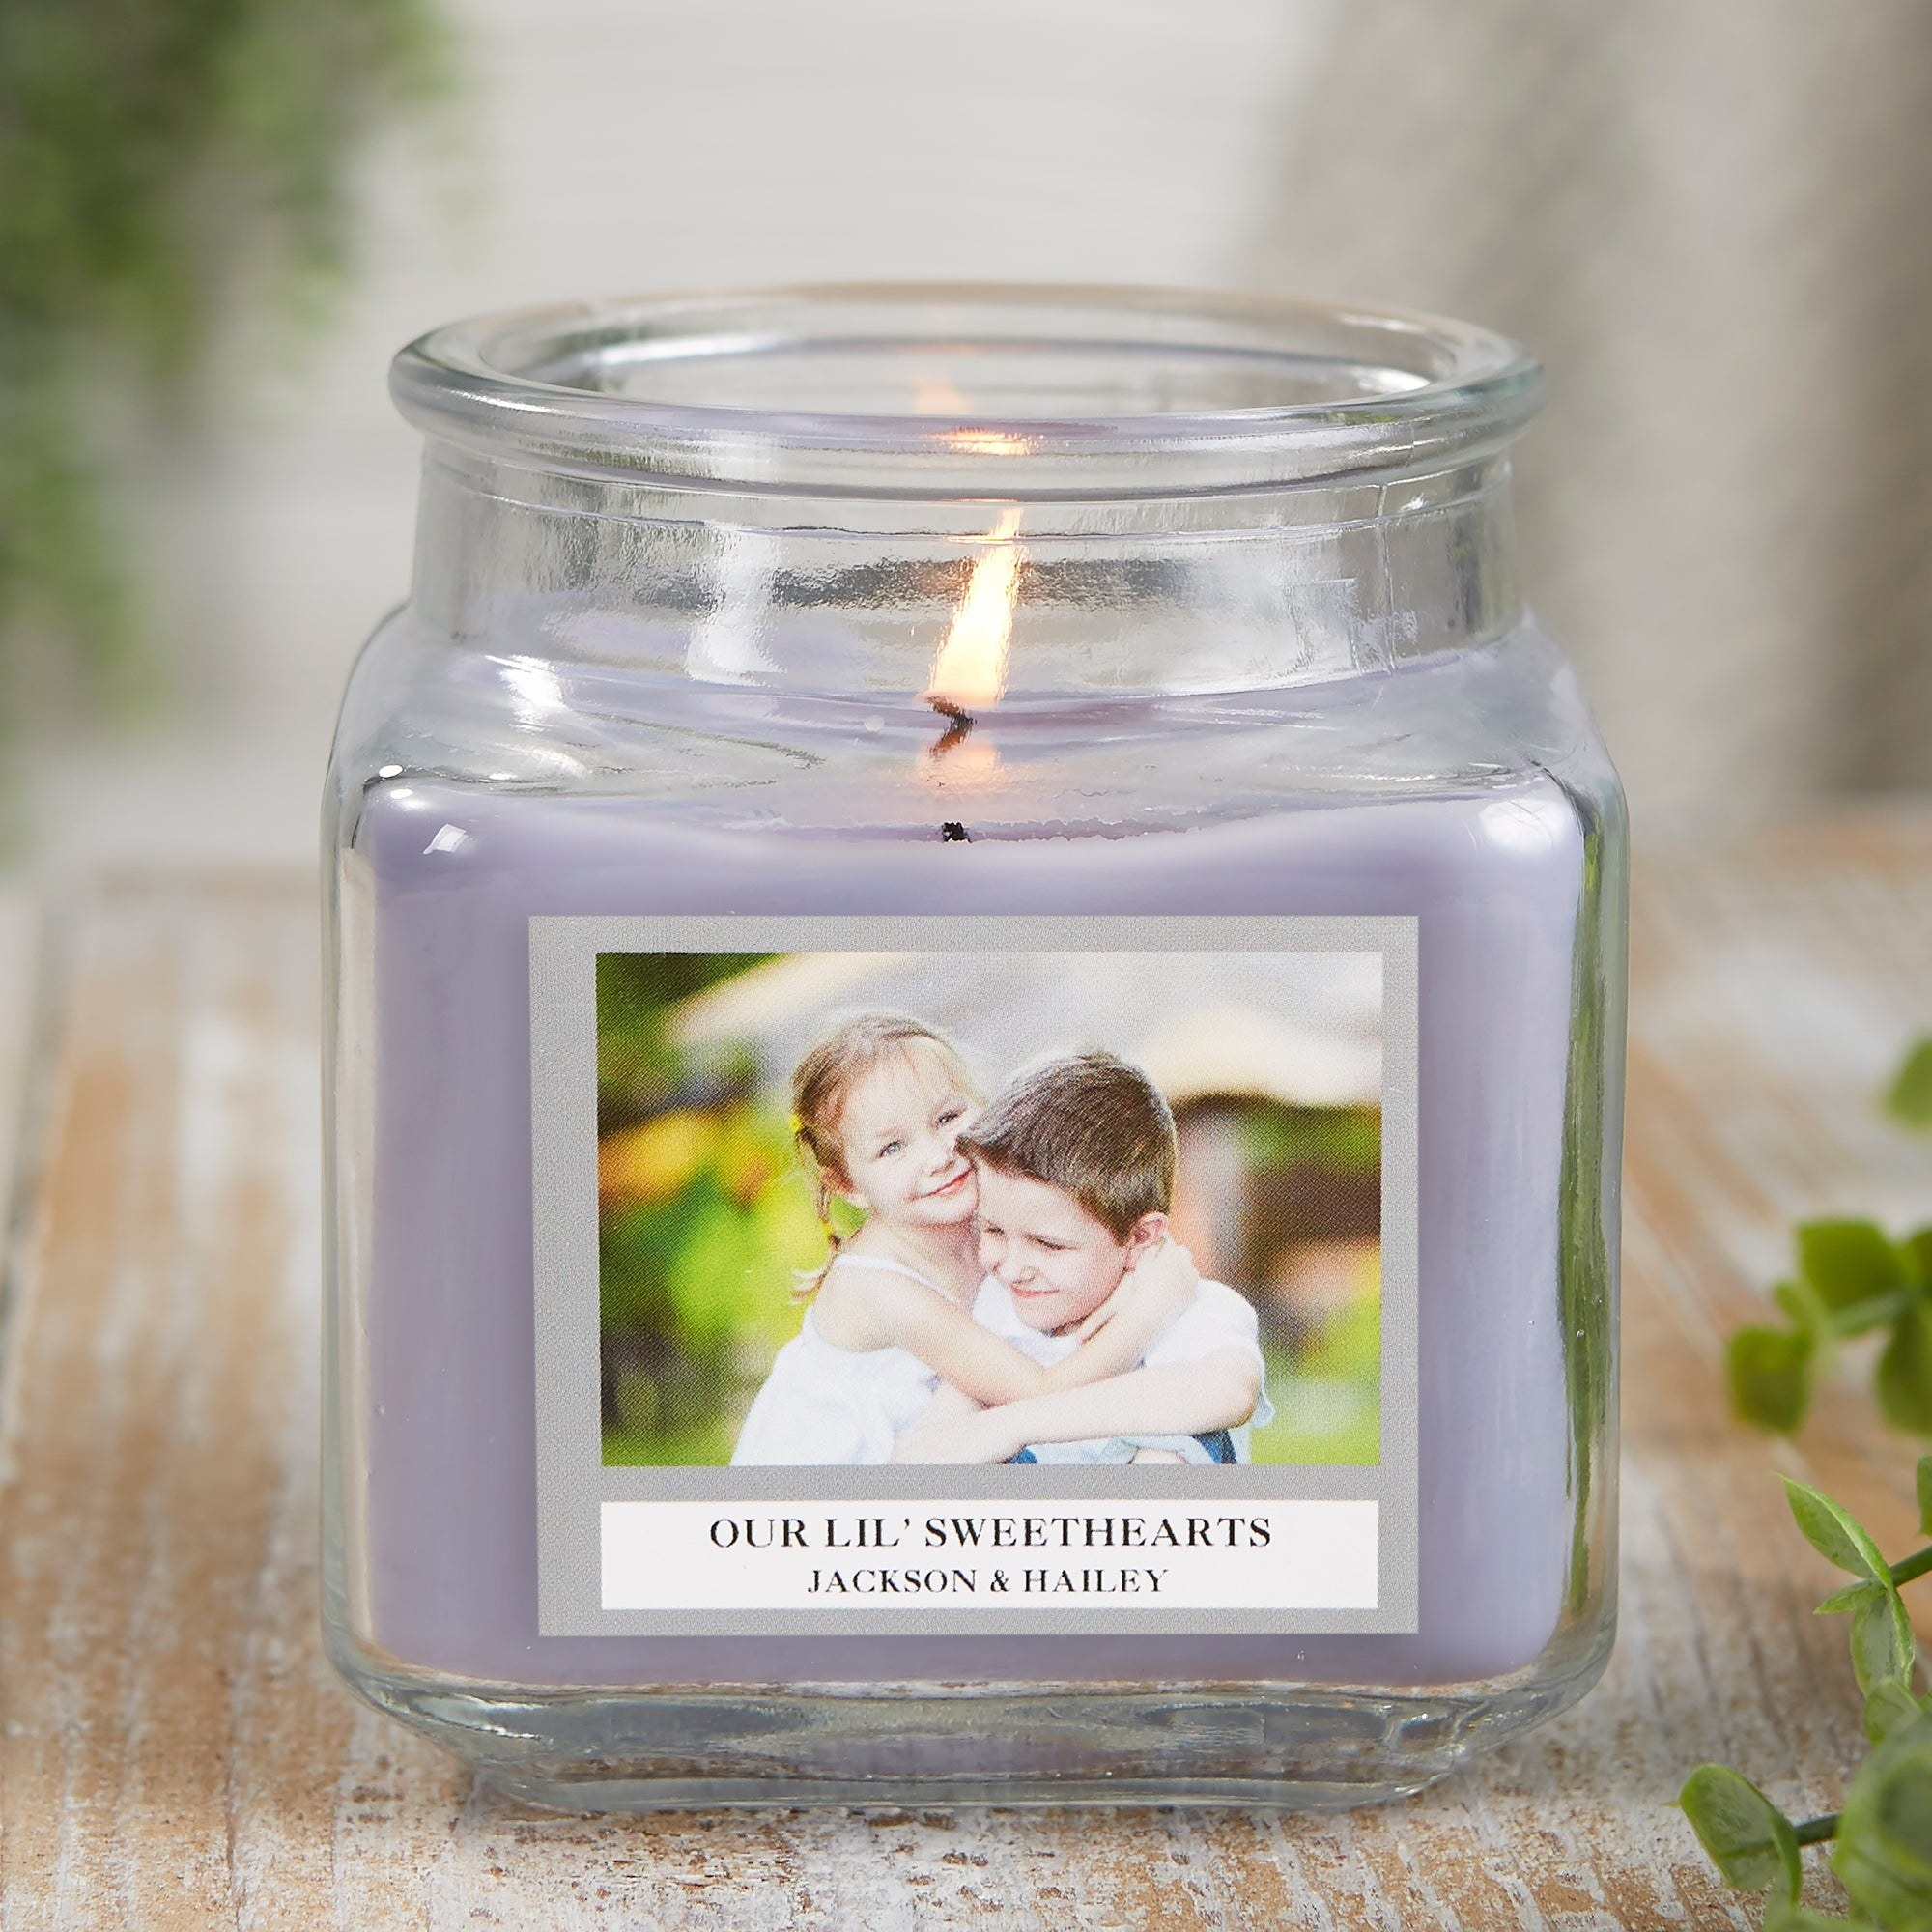 the 10 oz lavender candle with a picture of two kids and their names with a custom message